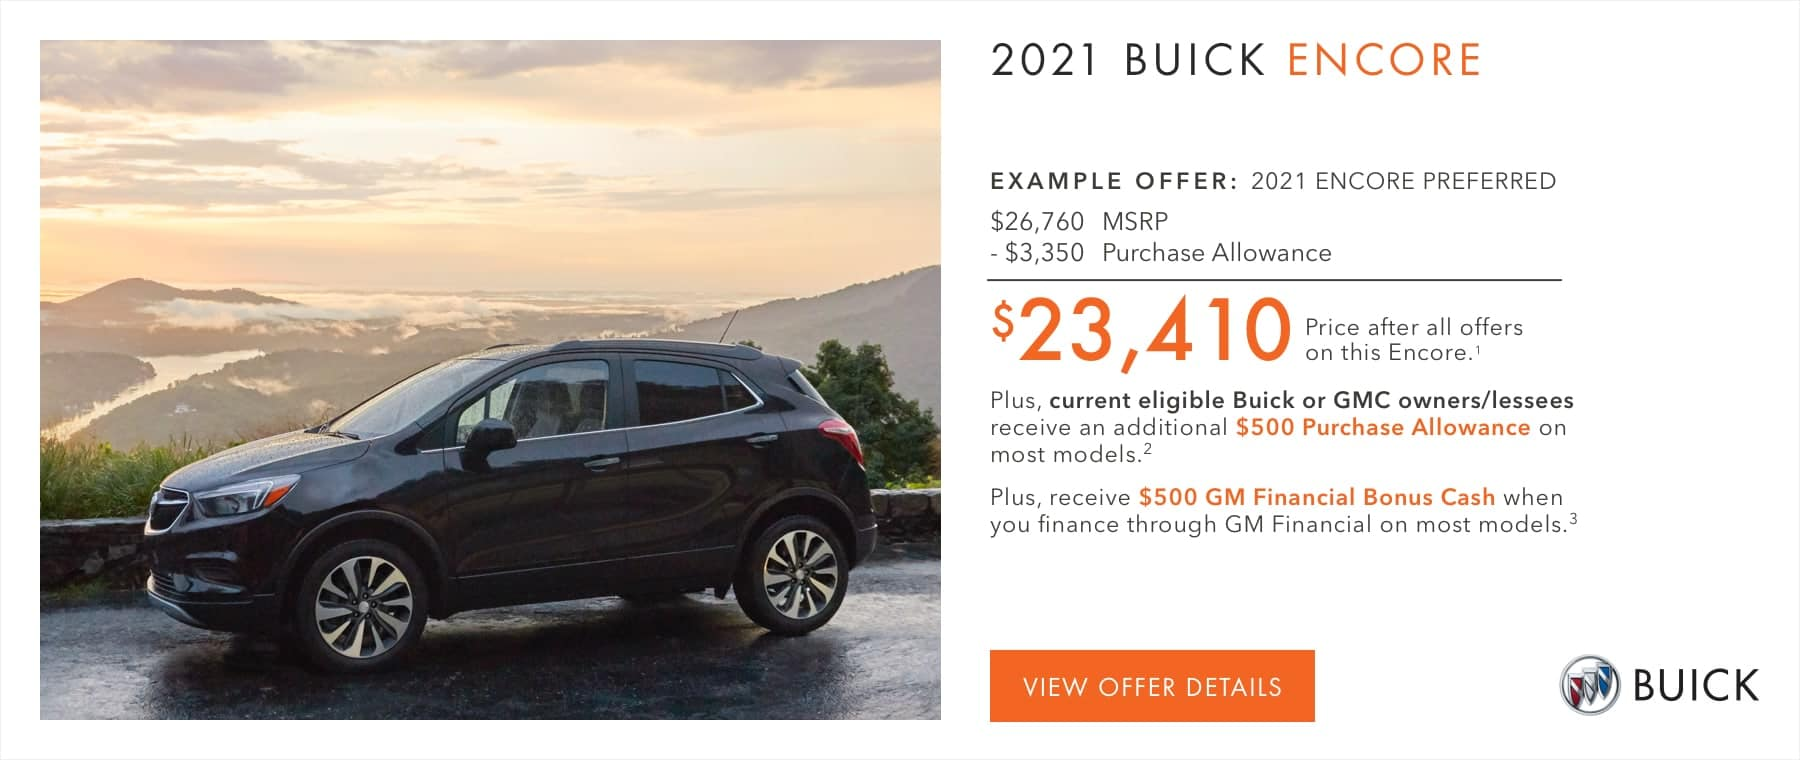 EXAMPLE OFFER: 2021 Encore Preferred $26,760 MSRP -$3,350 Purchase Allowance $23,410 Price after all offers on this Encore.1 Plus, current eligible Buick or GMC owners/lessees receive an additional $500 Purchase Allowance on most models.2 Plus, receive $500 GM Financial Bonus Cash when you finance through GM Financial on most models.3